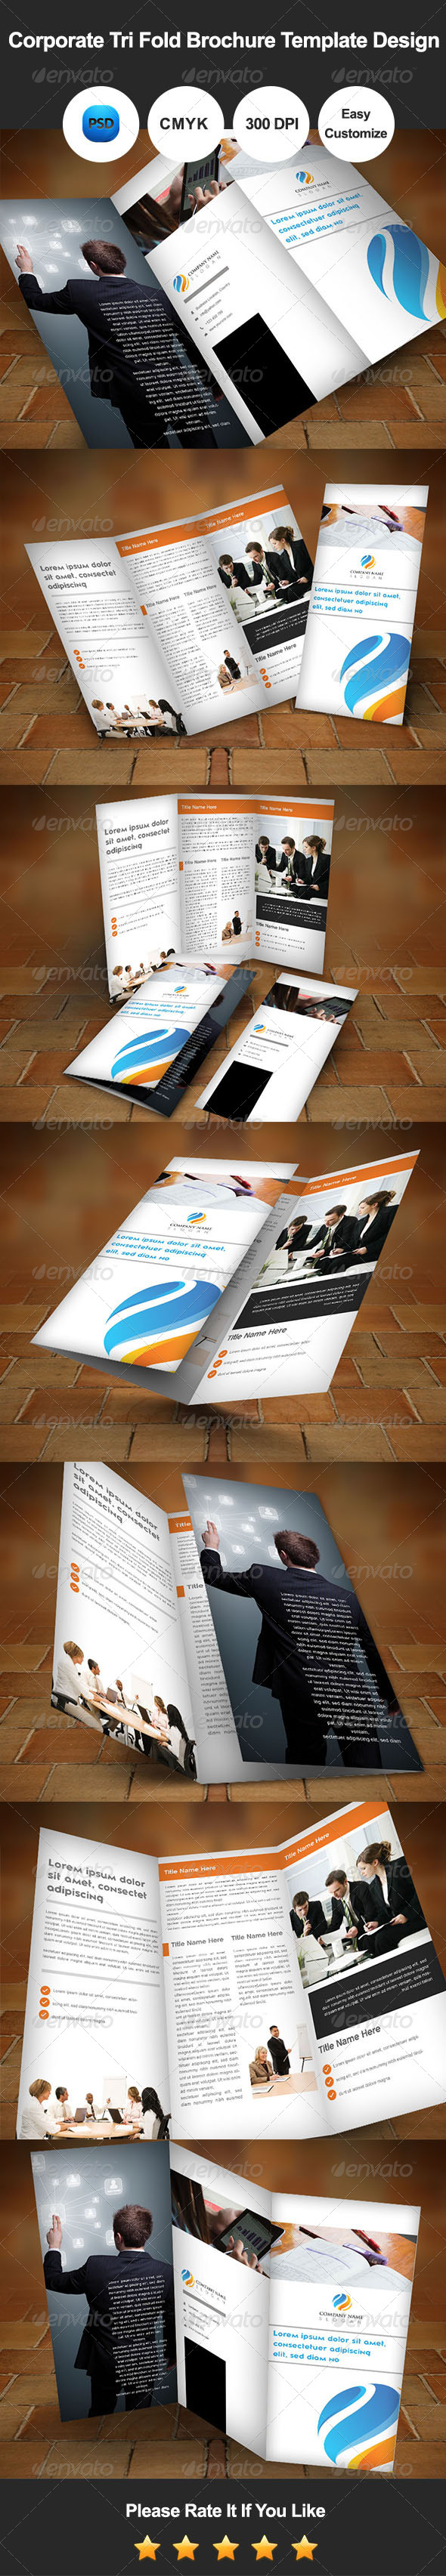 GraphicRiver Corporate Tri Fold Brochure Template Design 7450124